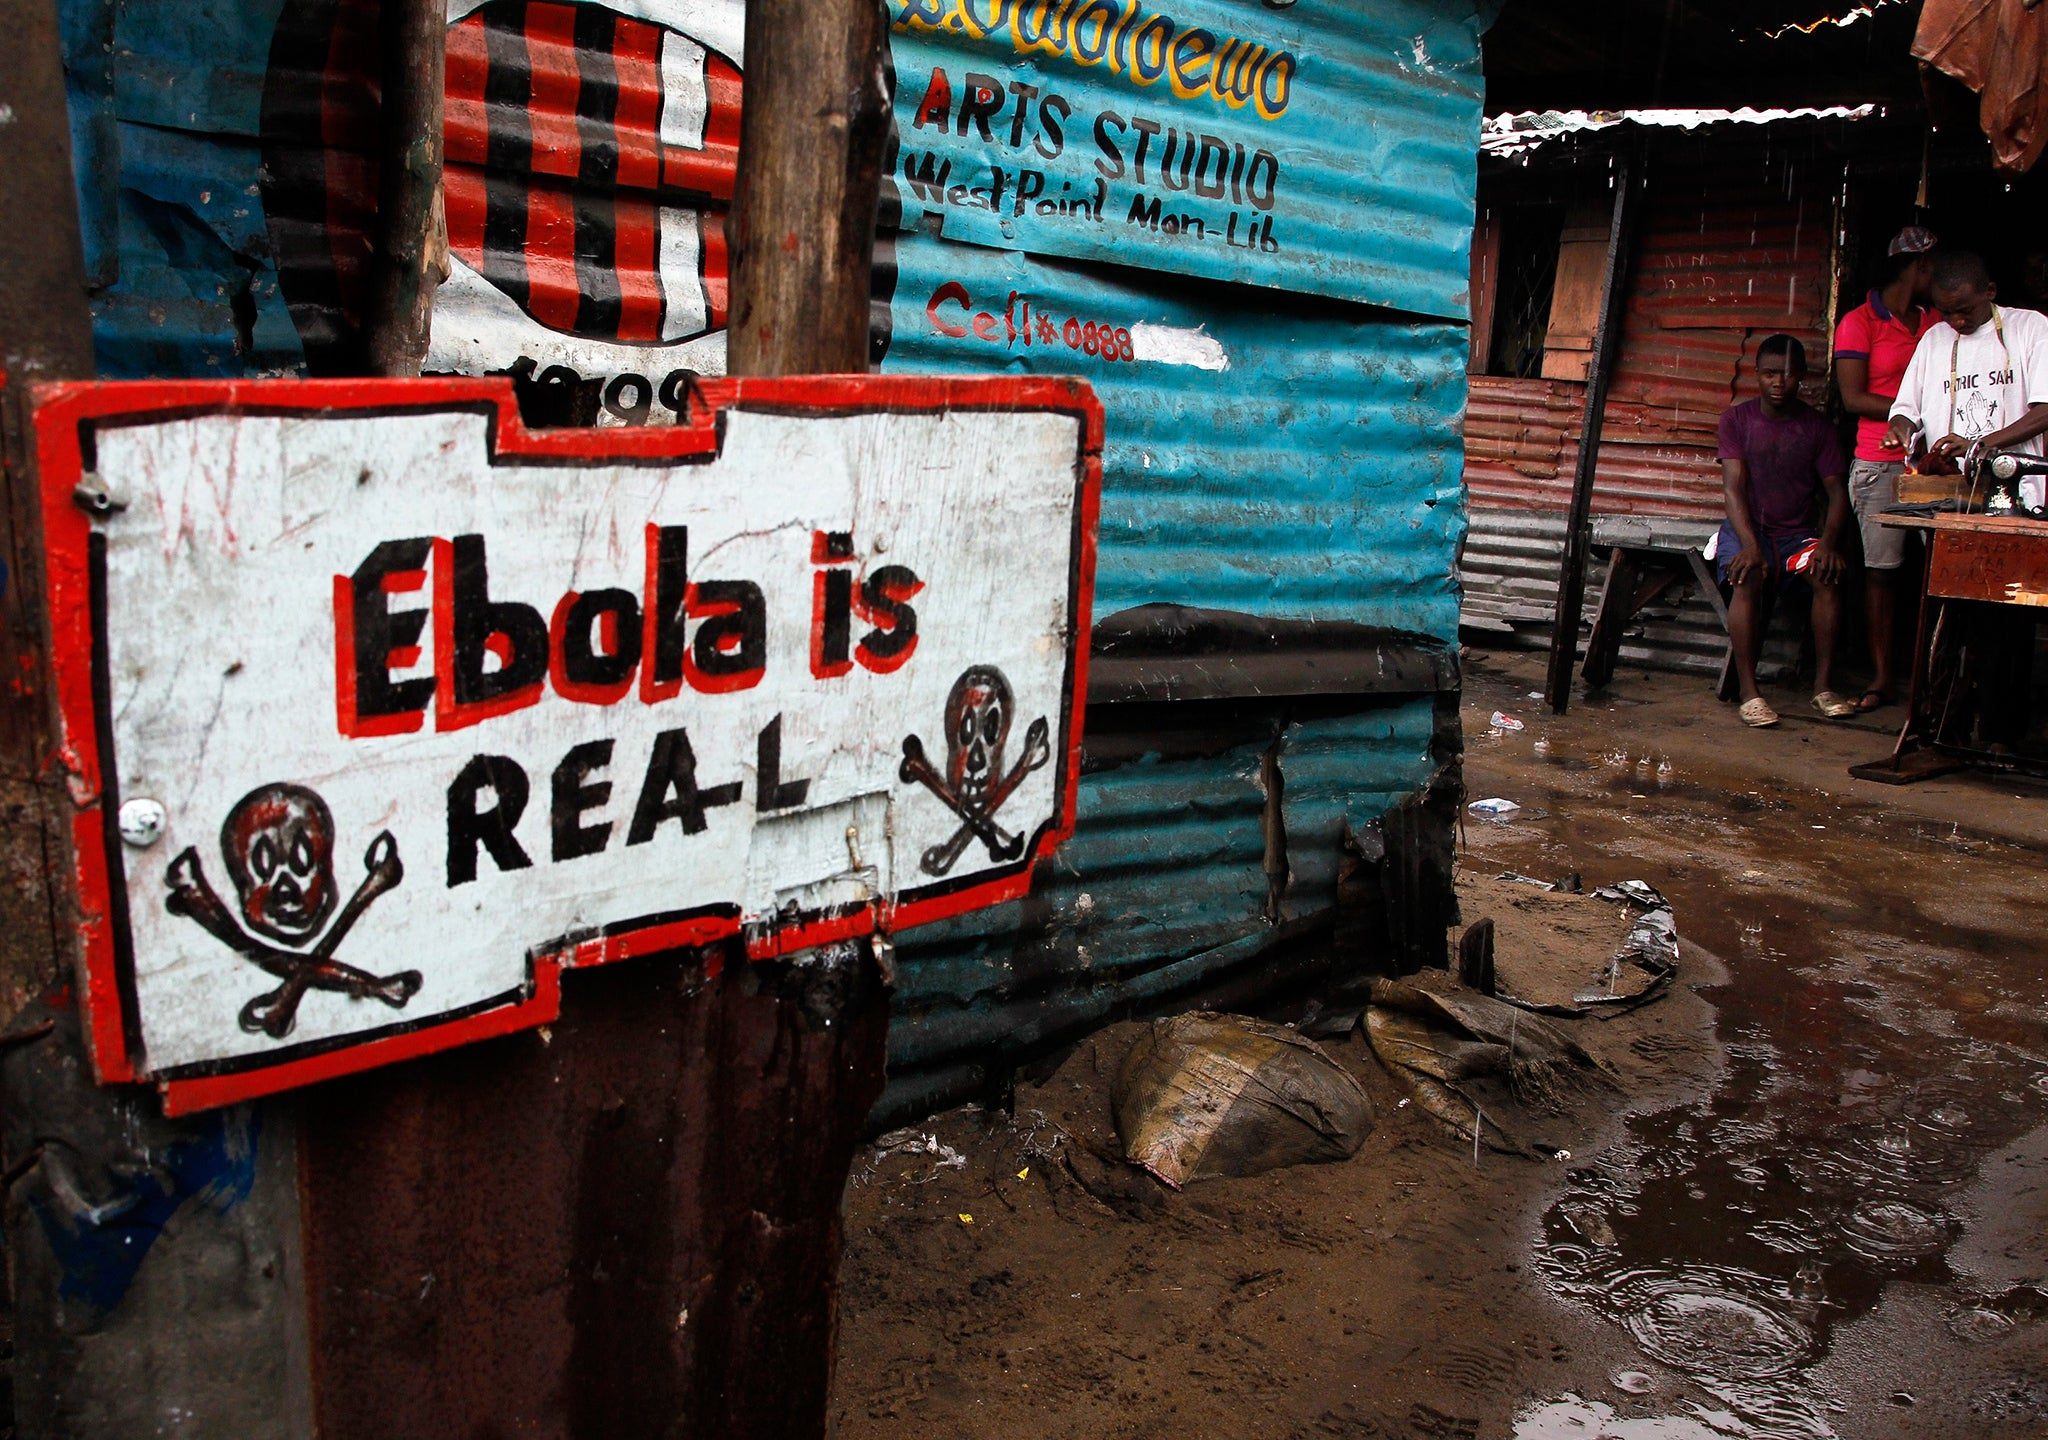 The Ebola crisis is becoming an impossible situation